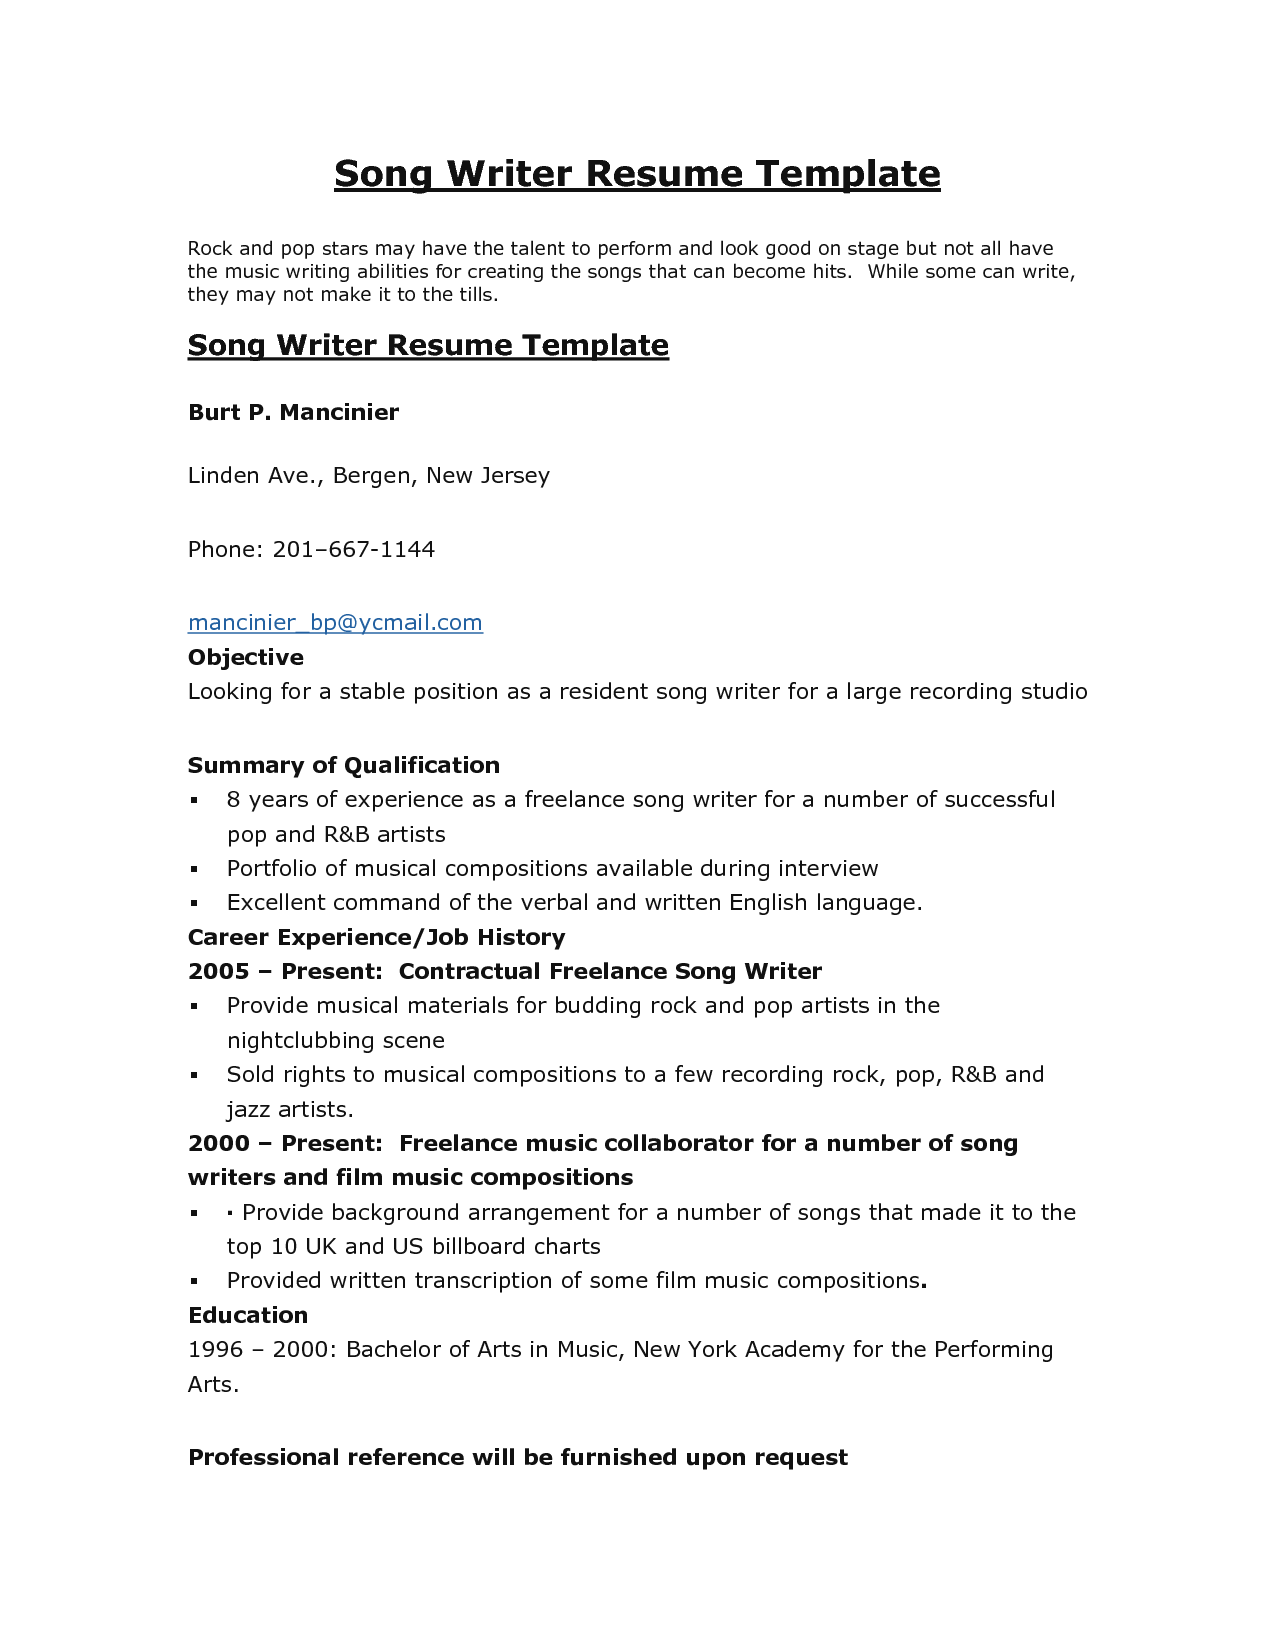 resume examples free writing templates format samples song burt ...